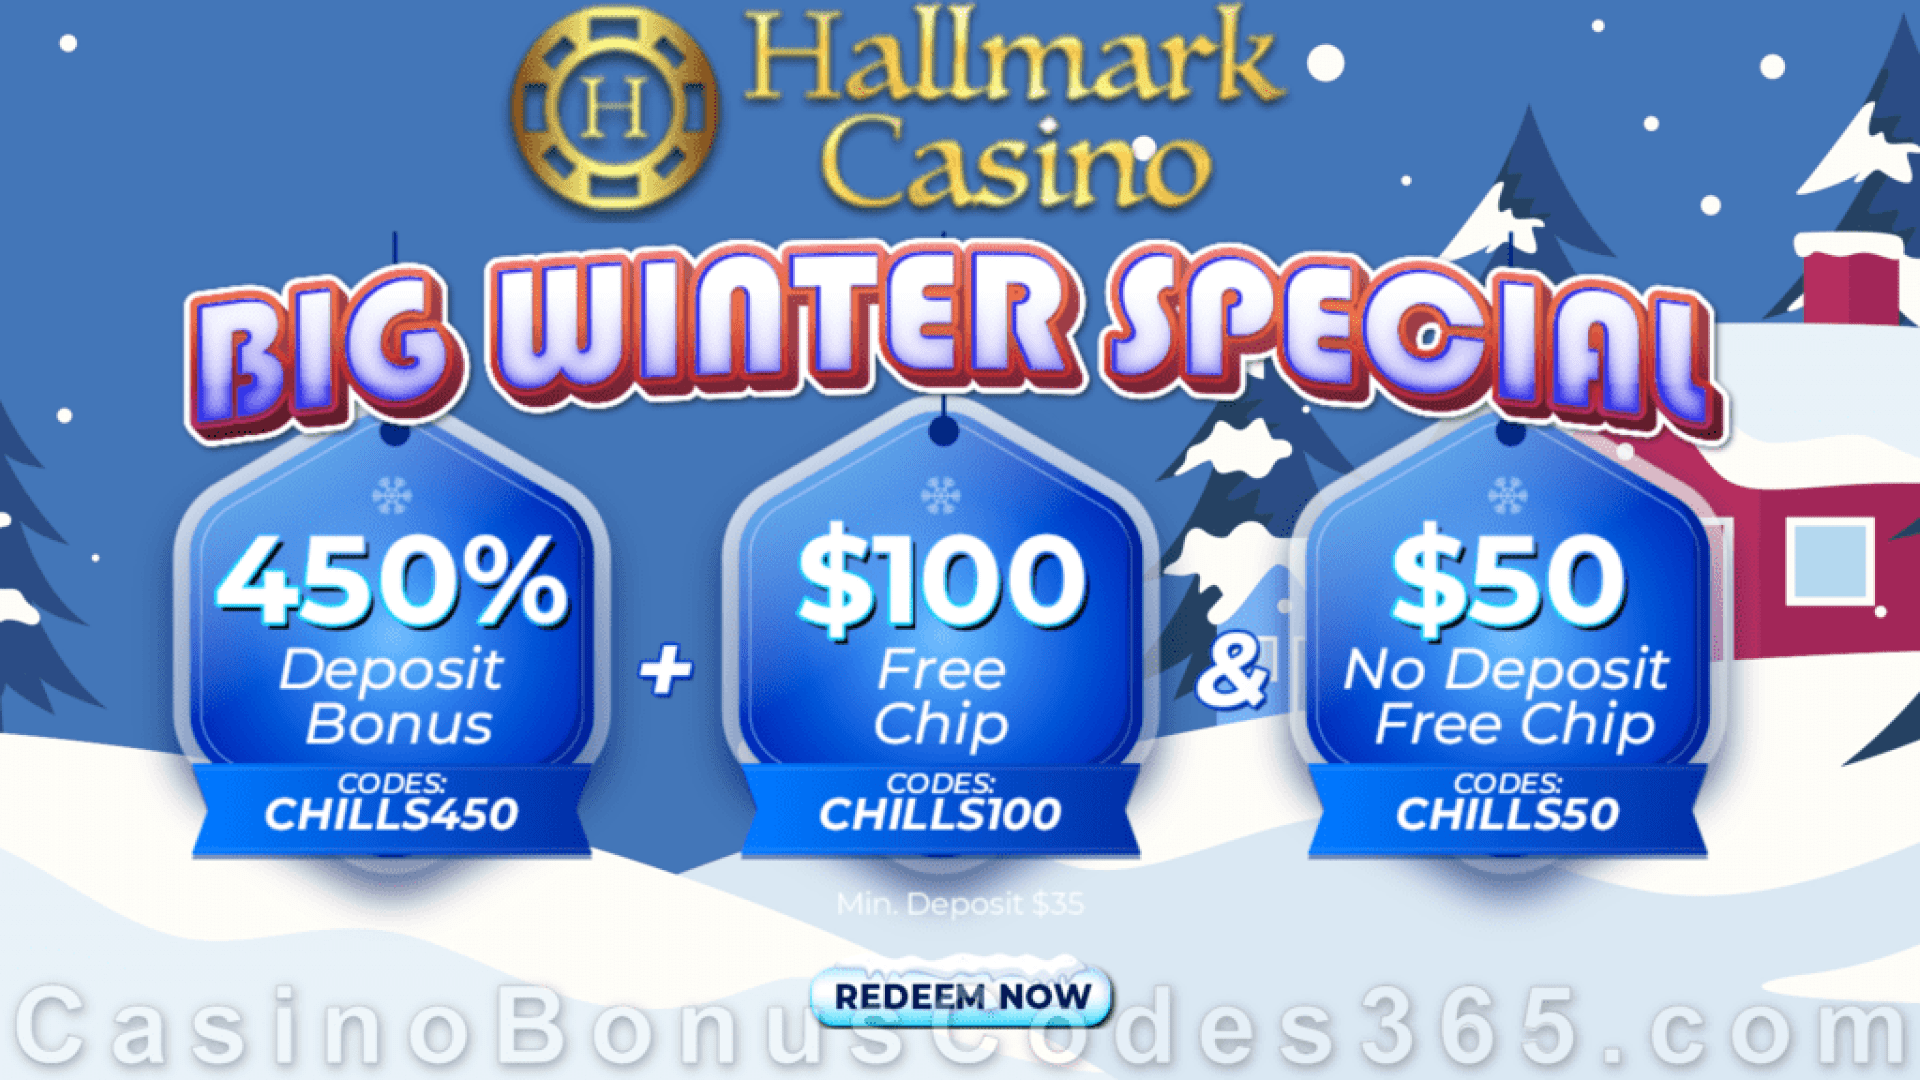 Hallmark Casino Amazing $50 No Deposit FREE Chip and 450% Match Bonus plus $100 FREE Chip Promotion